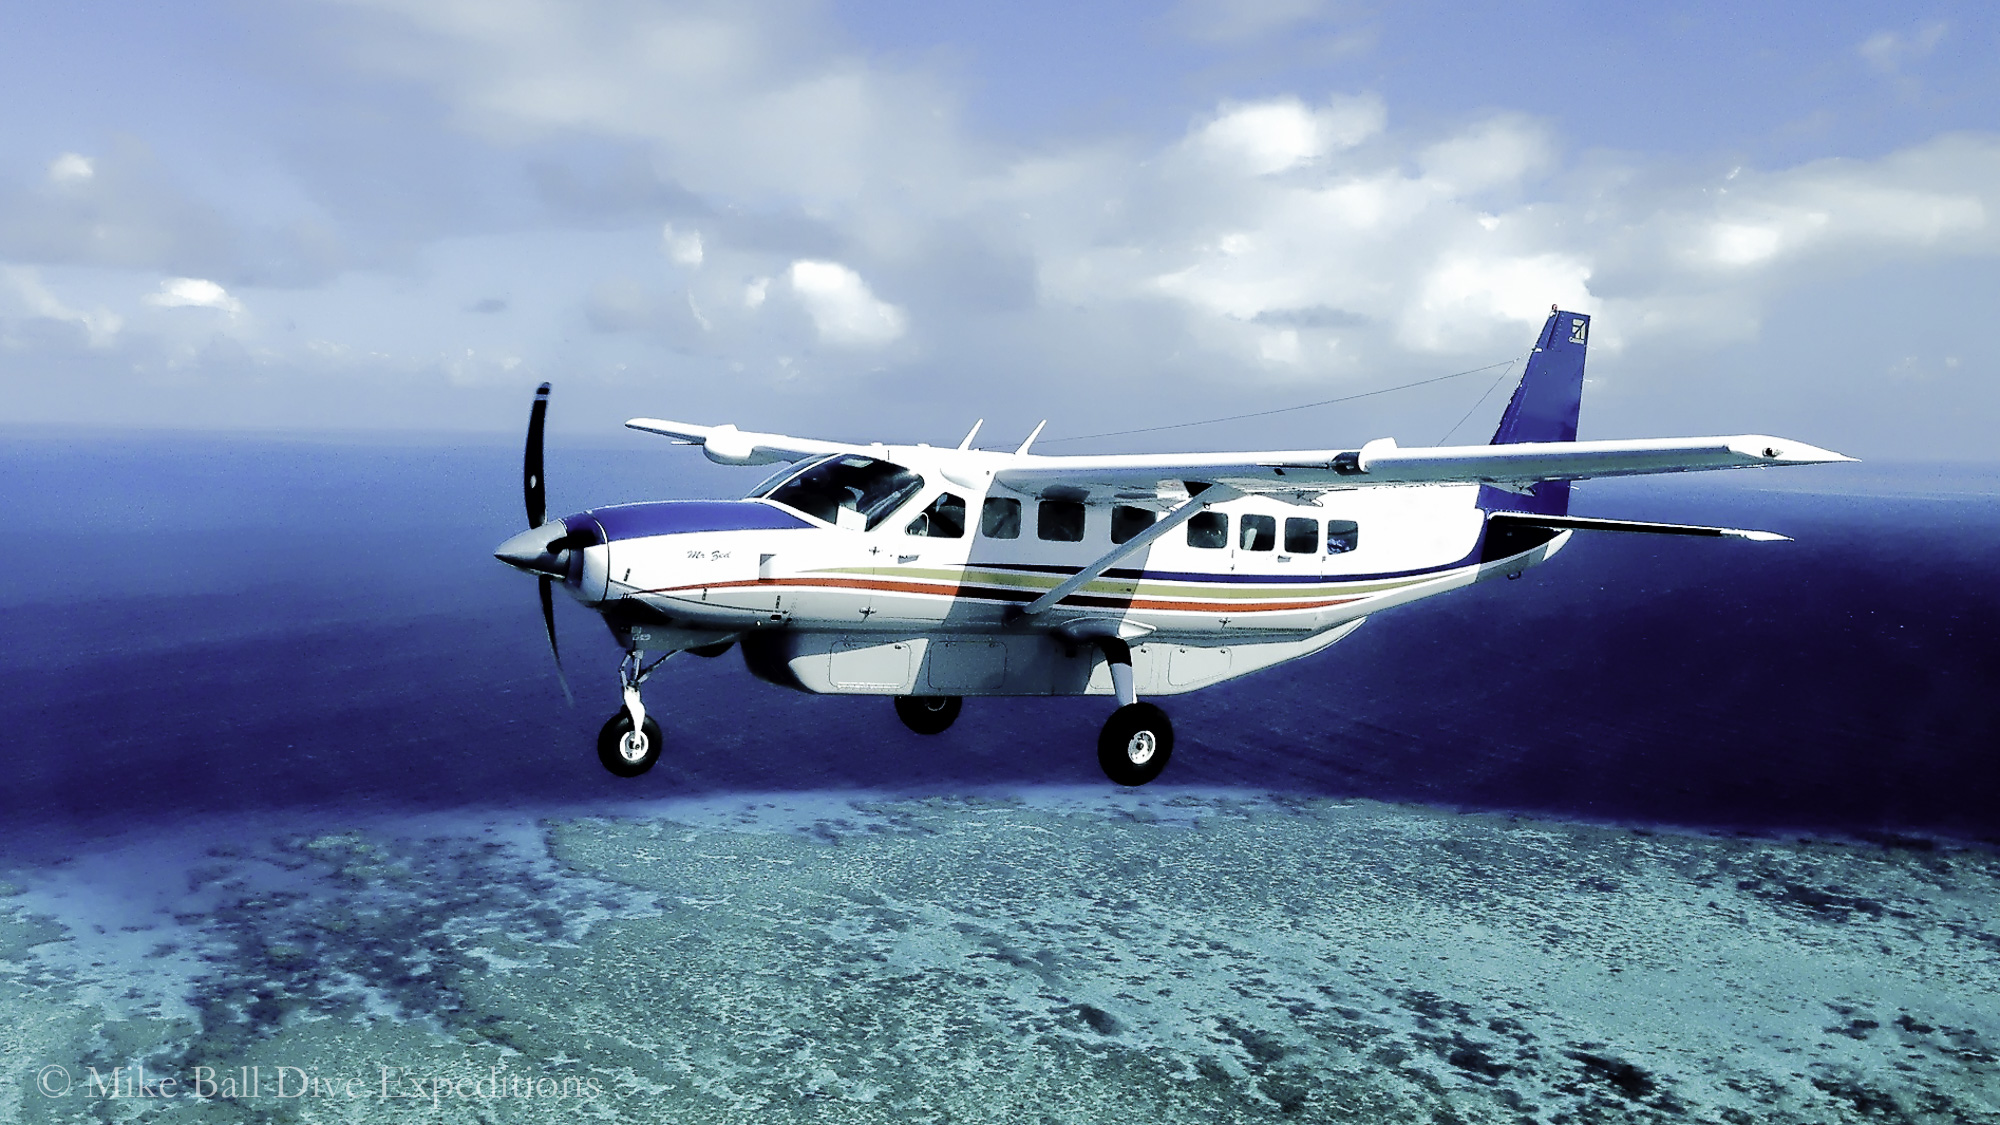 Take a low level scenic flight over the Reef to Lizard Island for a bird's eye view of some of the reefs you'll be diving. Captain Cook landed here in 1770, climbing to its peak to search for a way through the reefs and naming the island after the many monitor lizards that live here.